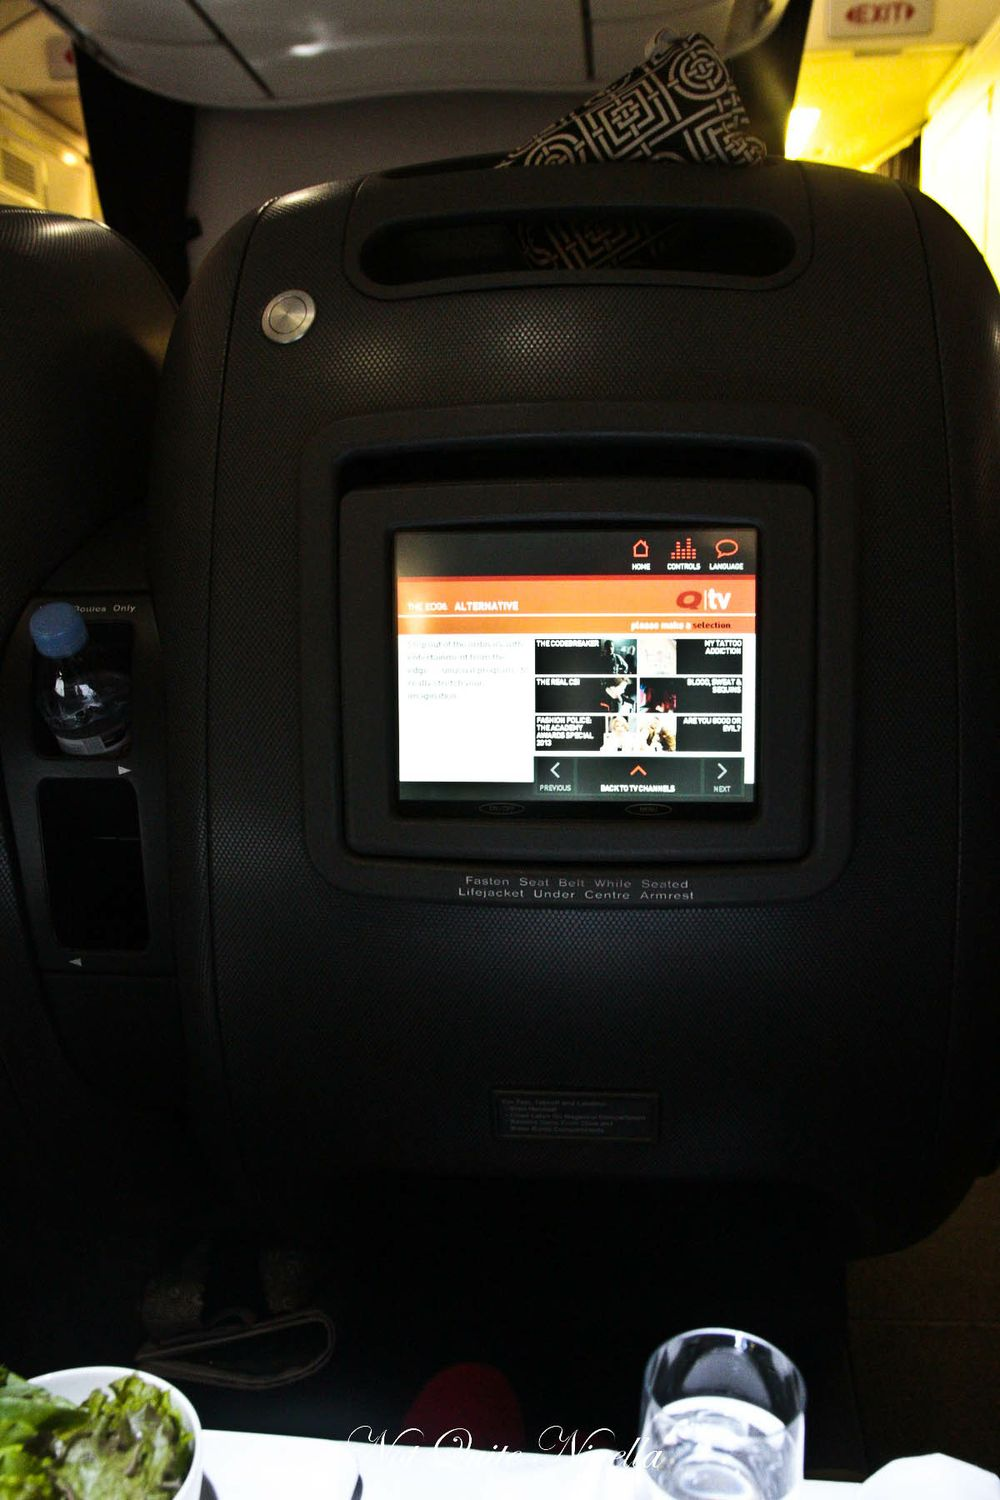 qantas business class review-1 - Copy